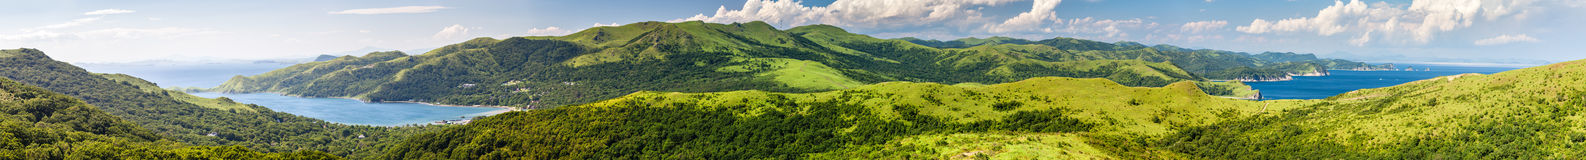 Long panorama of the Russian resort area of the Sea of Japan. With hills and greenery in summer sunny day royalty free stock image